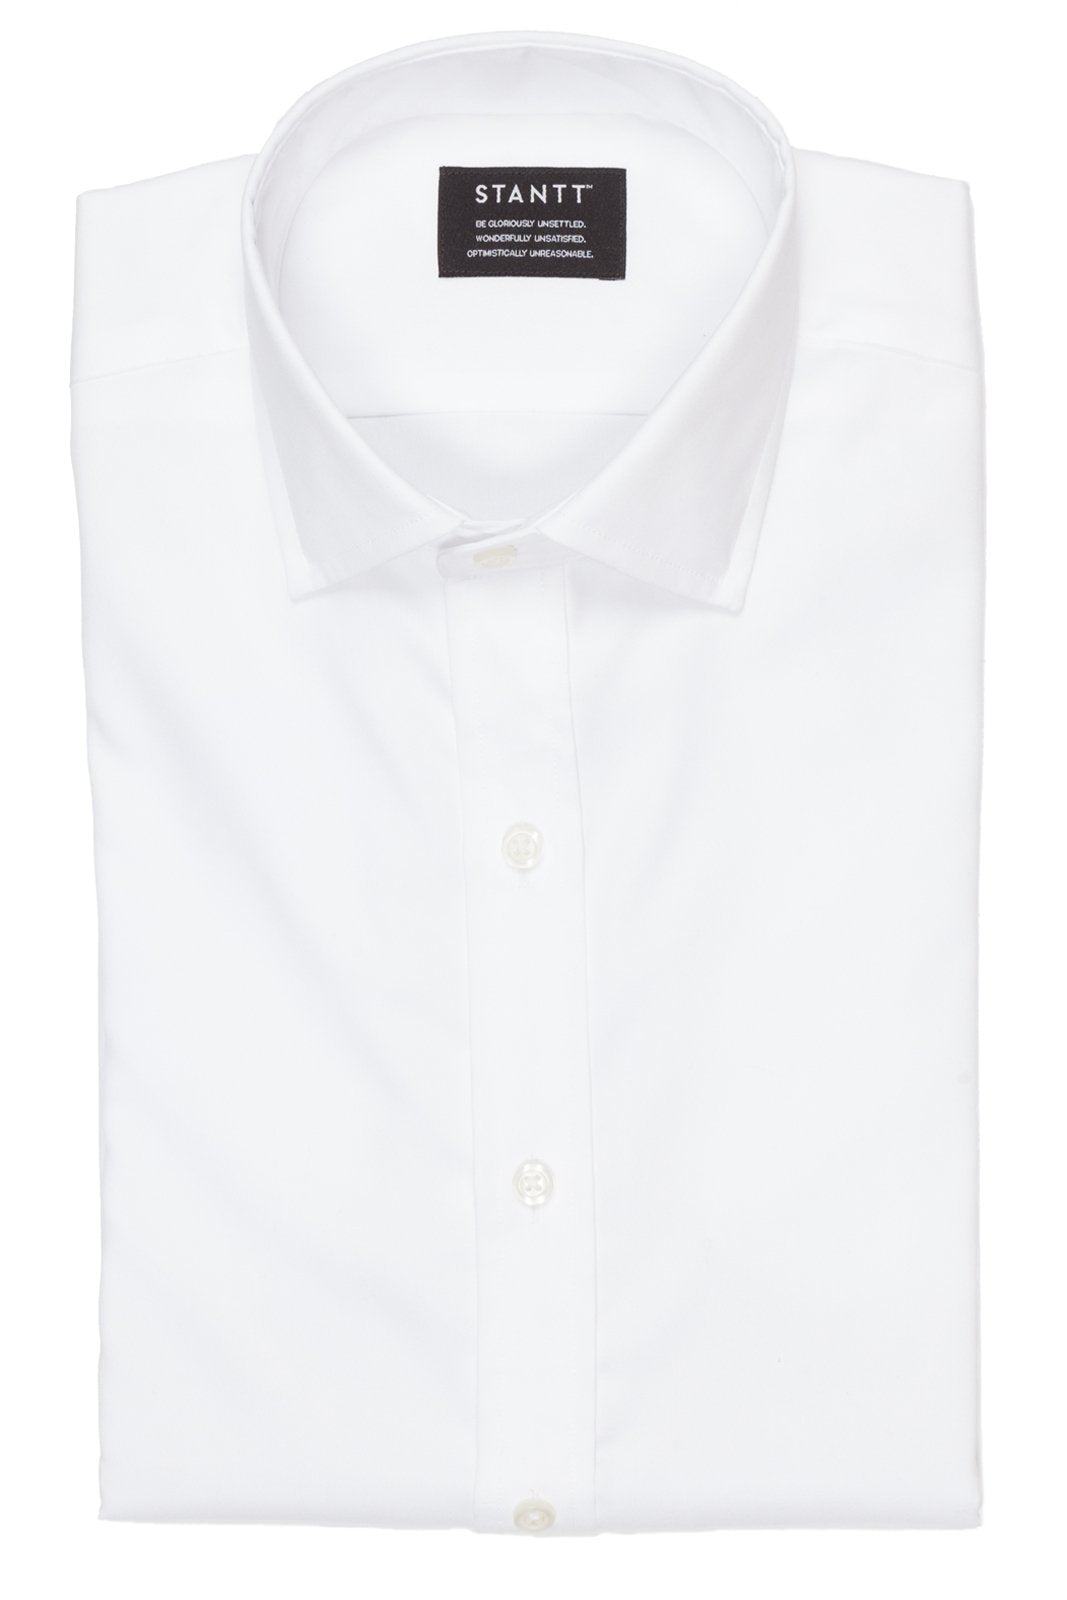 White Pinpoint Oxford: Modified-Spread Collar, Barrel Cuff